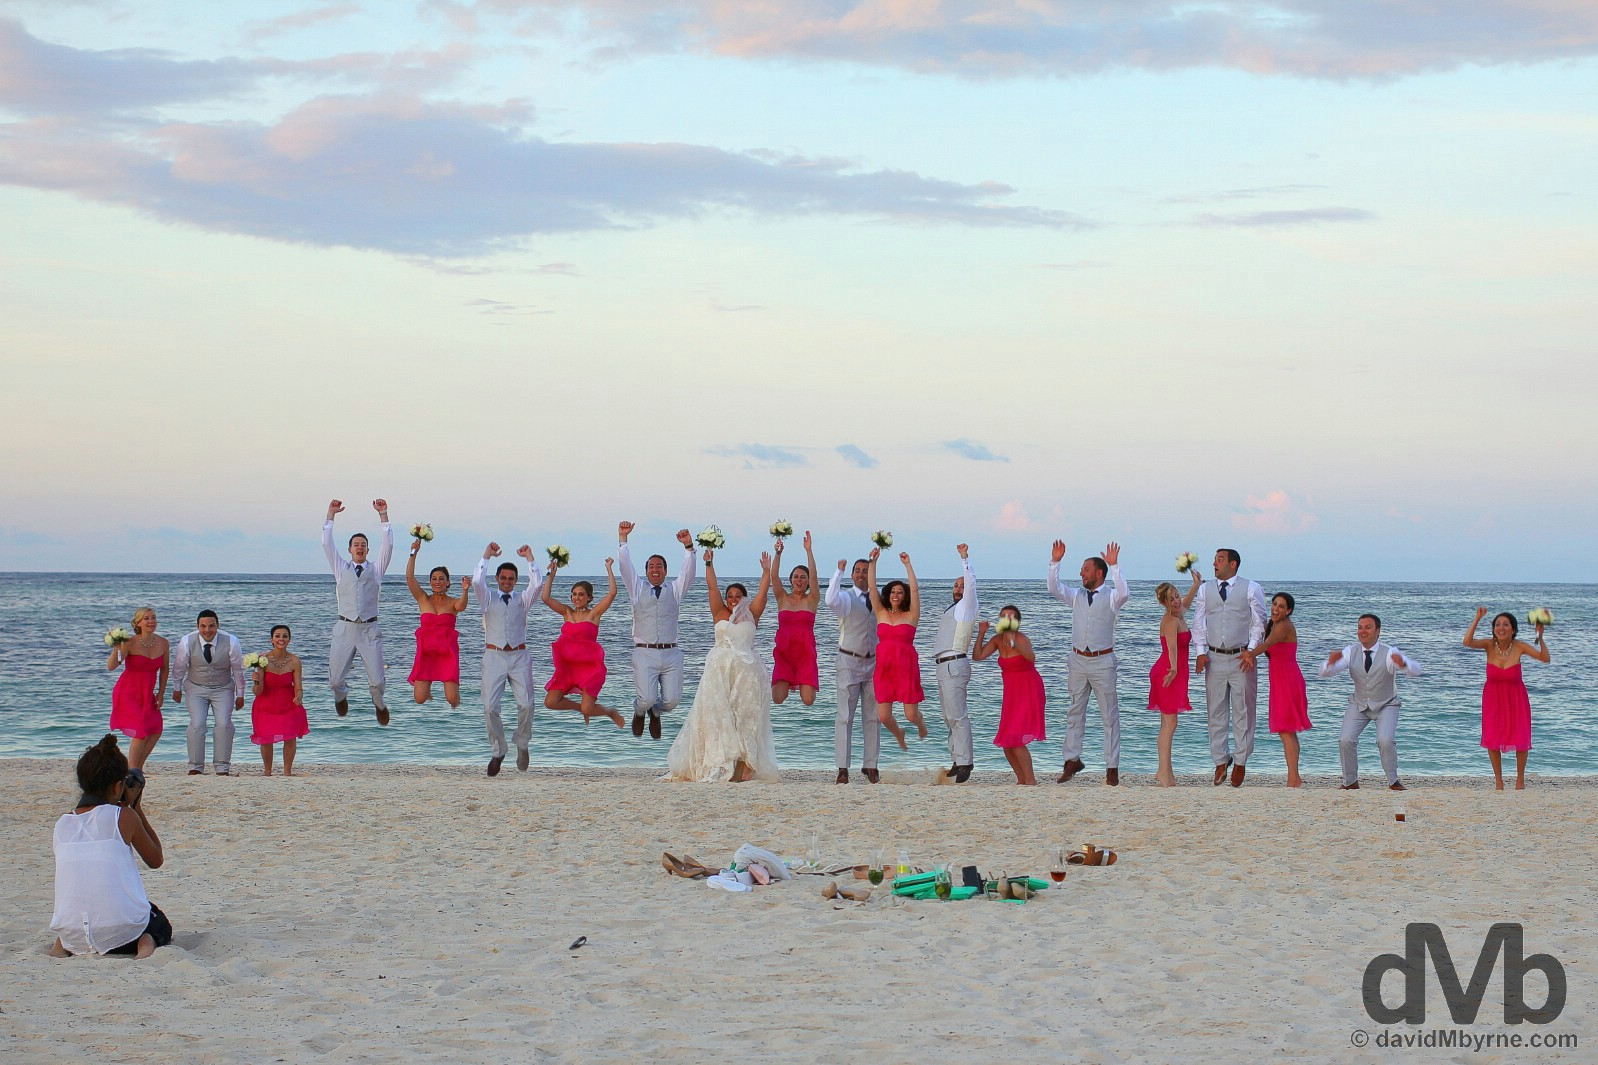 Wedding jump shot on Bavaro Beach, Punta Cana, Dominican Republic. May 28, 2015.